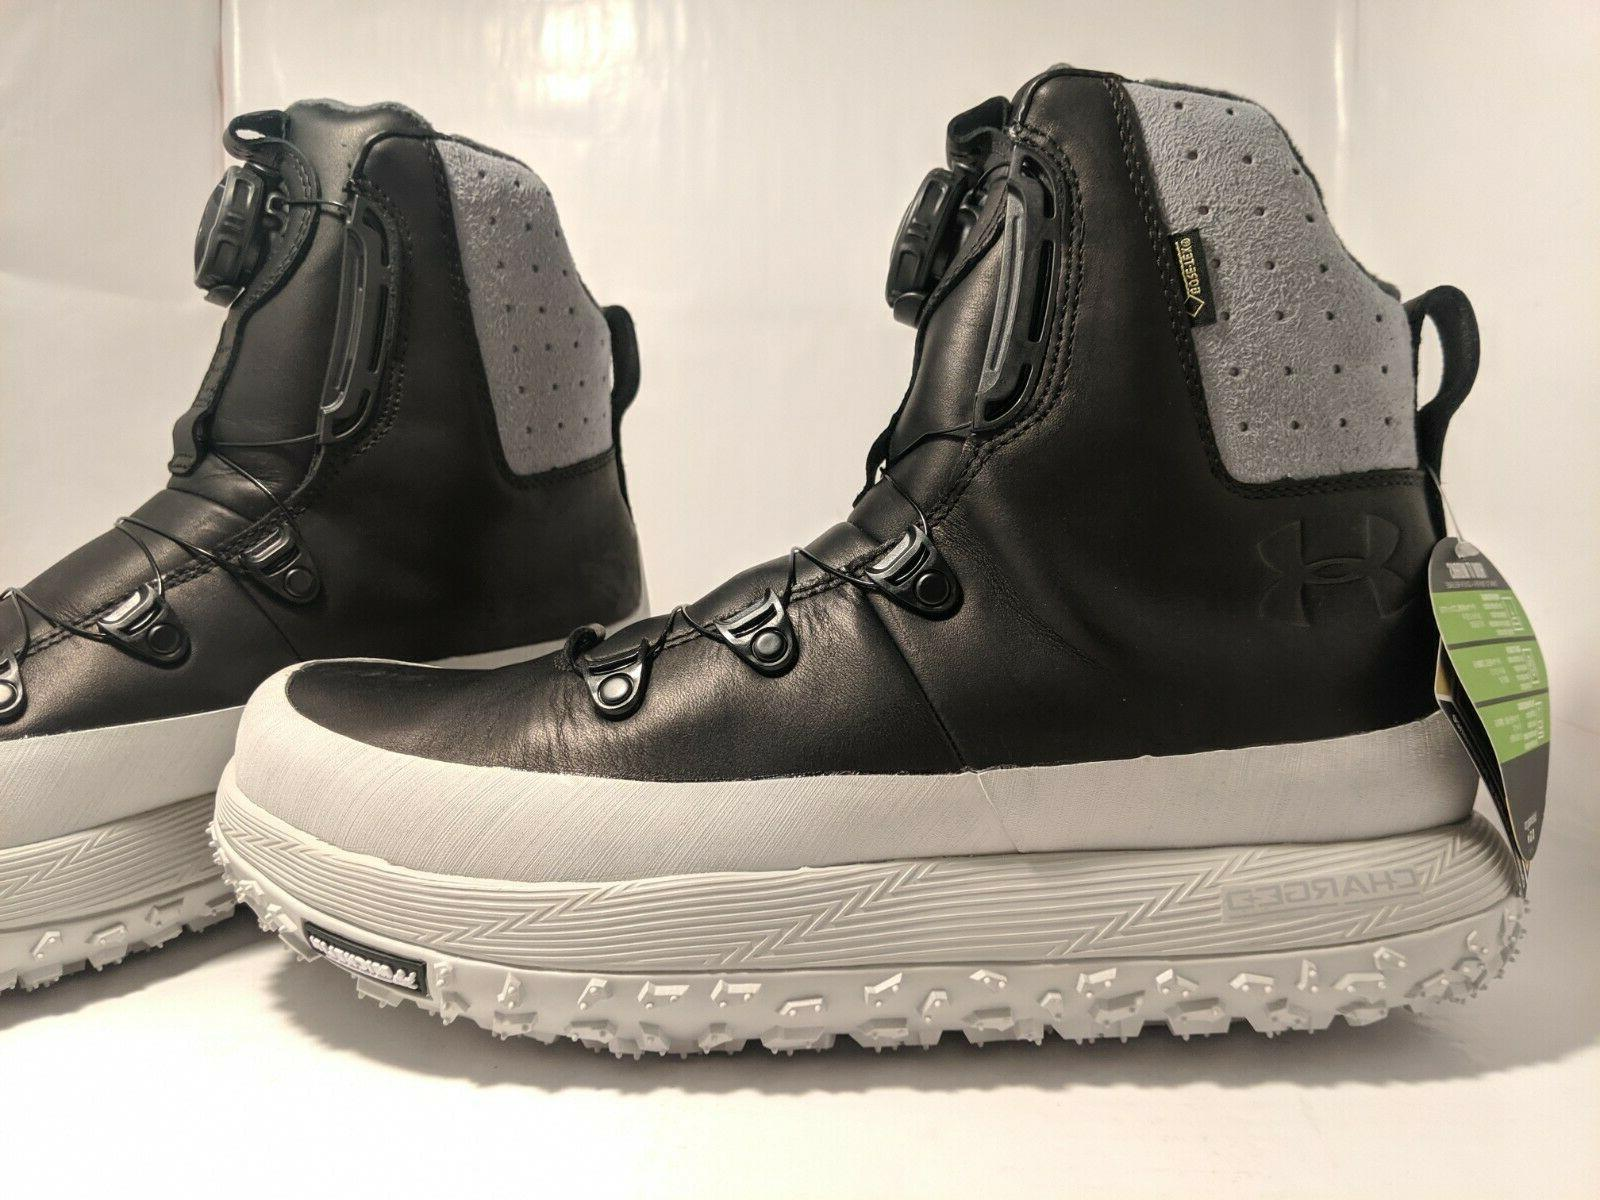 Under Armour Black/Gray Fat Govie SE Hiking Boots